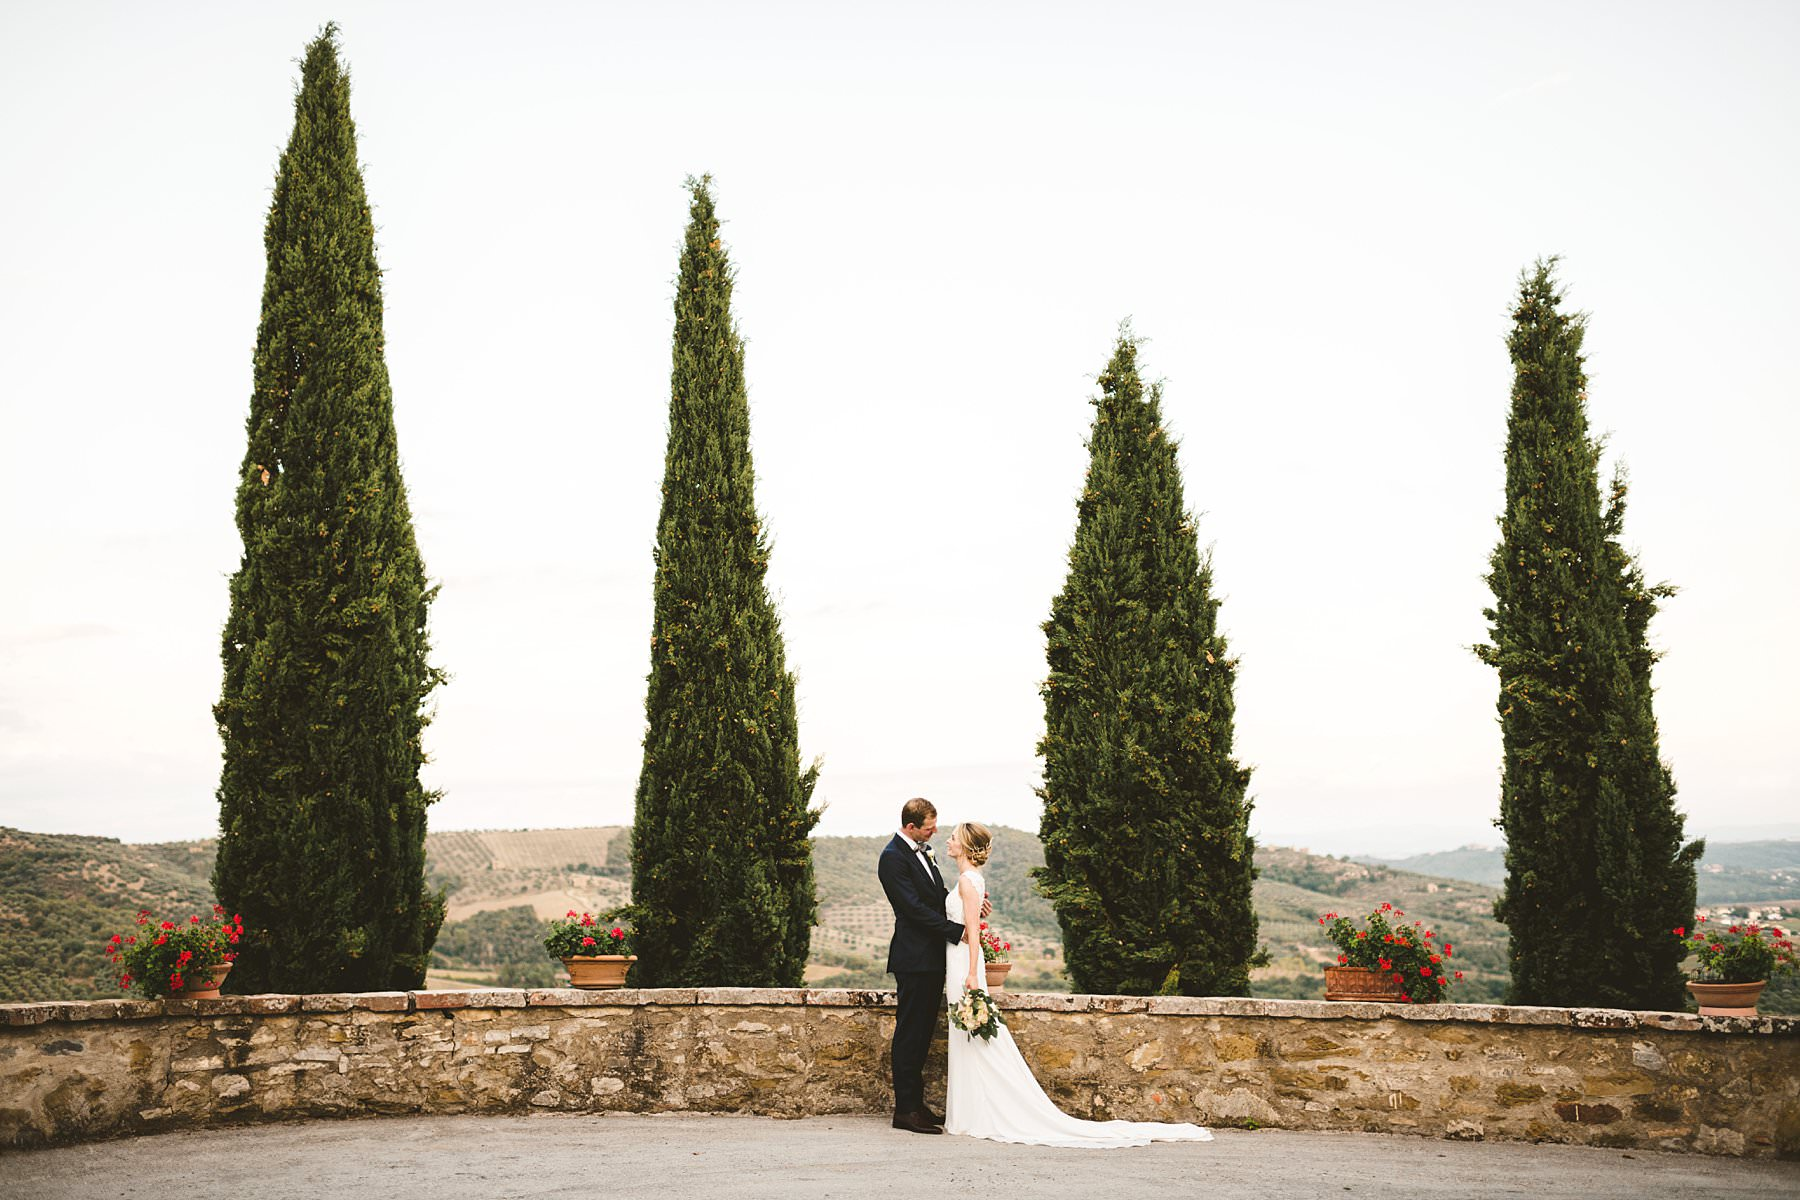 Getting married in the Italian countryside. Beautiful Australian couple got married in the countryside of Umbria at the historic residence Villa Monte Solare